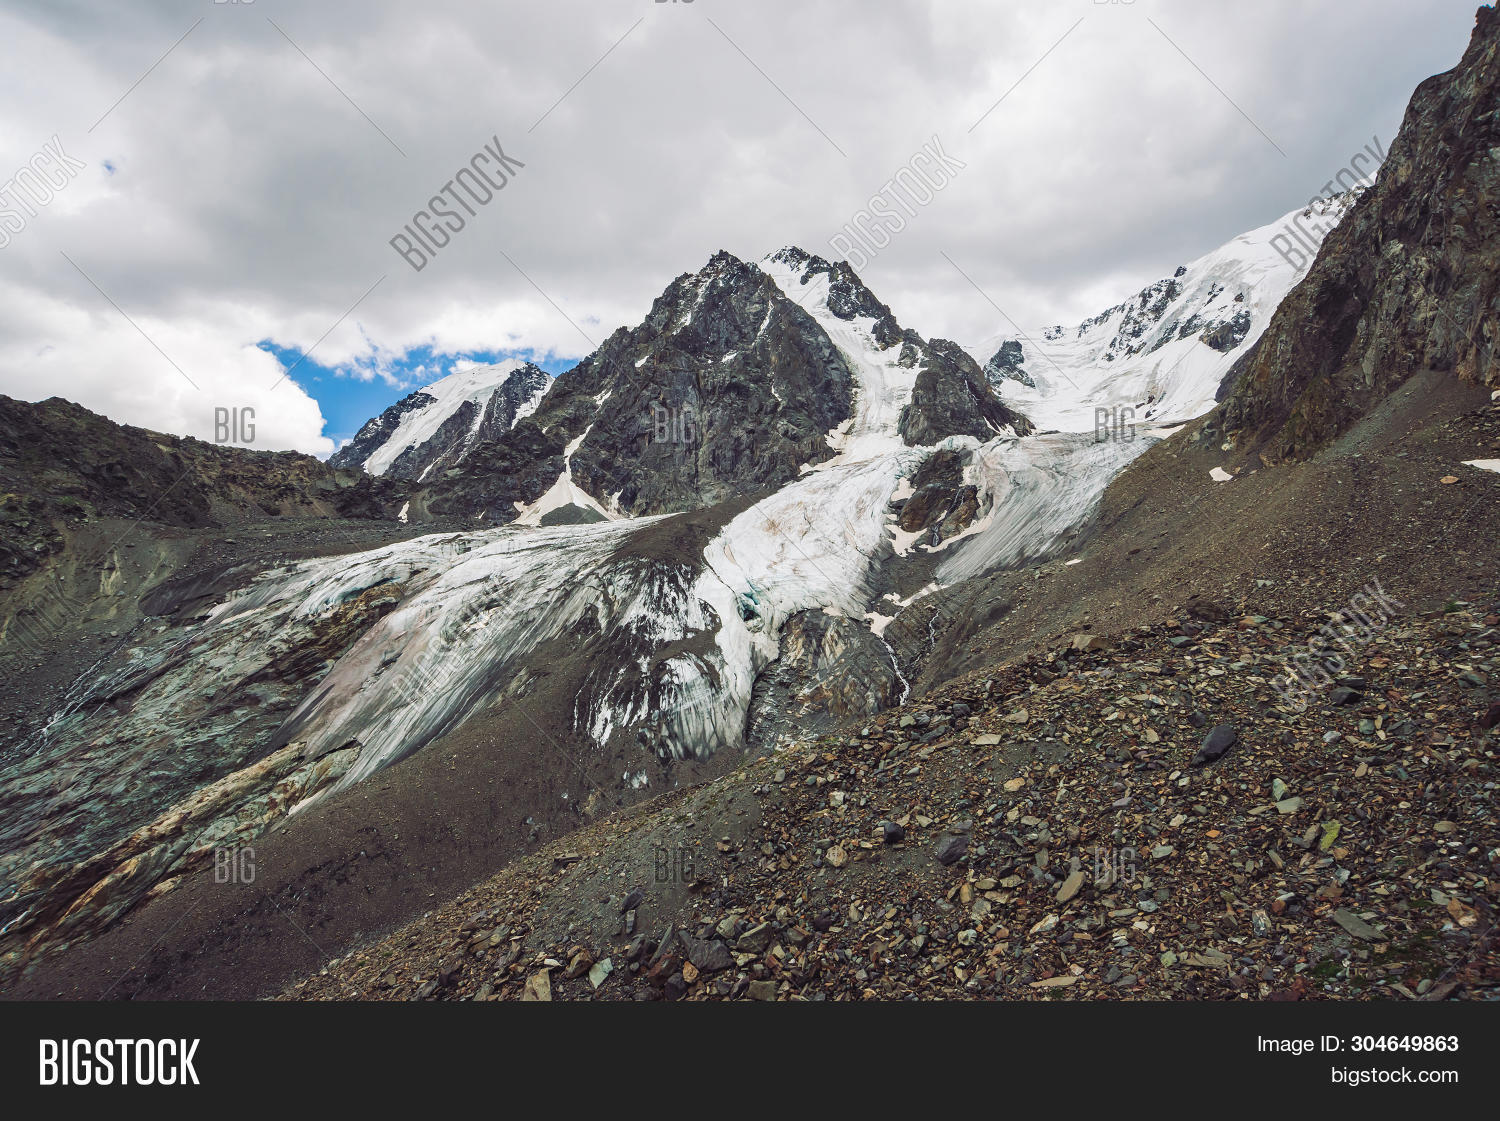 Alps,Altai,Canada,Iceland,Oregon,Scotland,alpine,atmospheric,background,beautiful,breathtaking,cloud,footpath,freedom,glacier,highland,hike,hiking,hill,ice,idyllic,inspiring,landscape,moraine,mountain,mountainside,nature,outdoors,peak,picturesque,range,ridge,rock,rocky,scenery,scenic,snow,snowy,stones,summer,sunshine,top,tourism,tranquility,travel,view,wanderlust,white,wilderness,wonderful